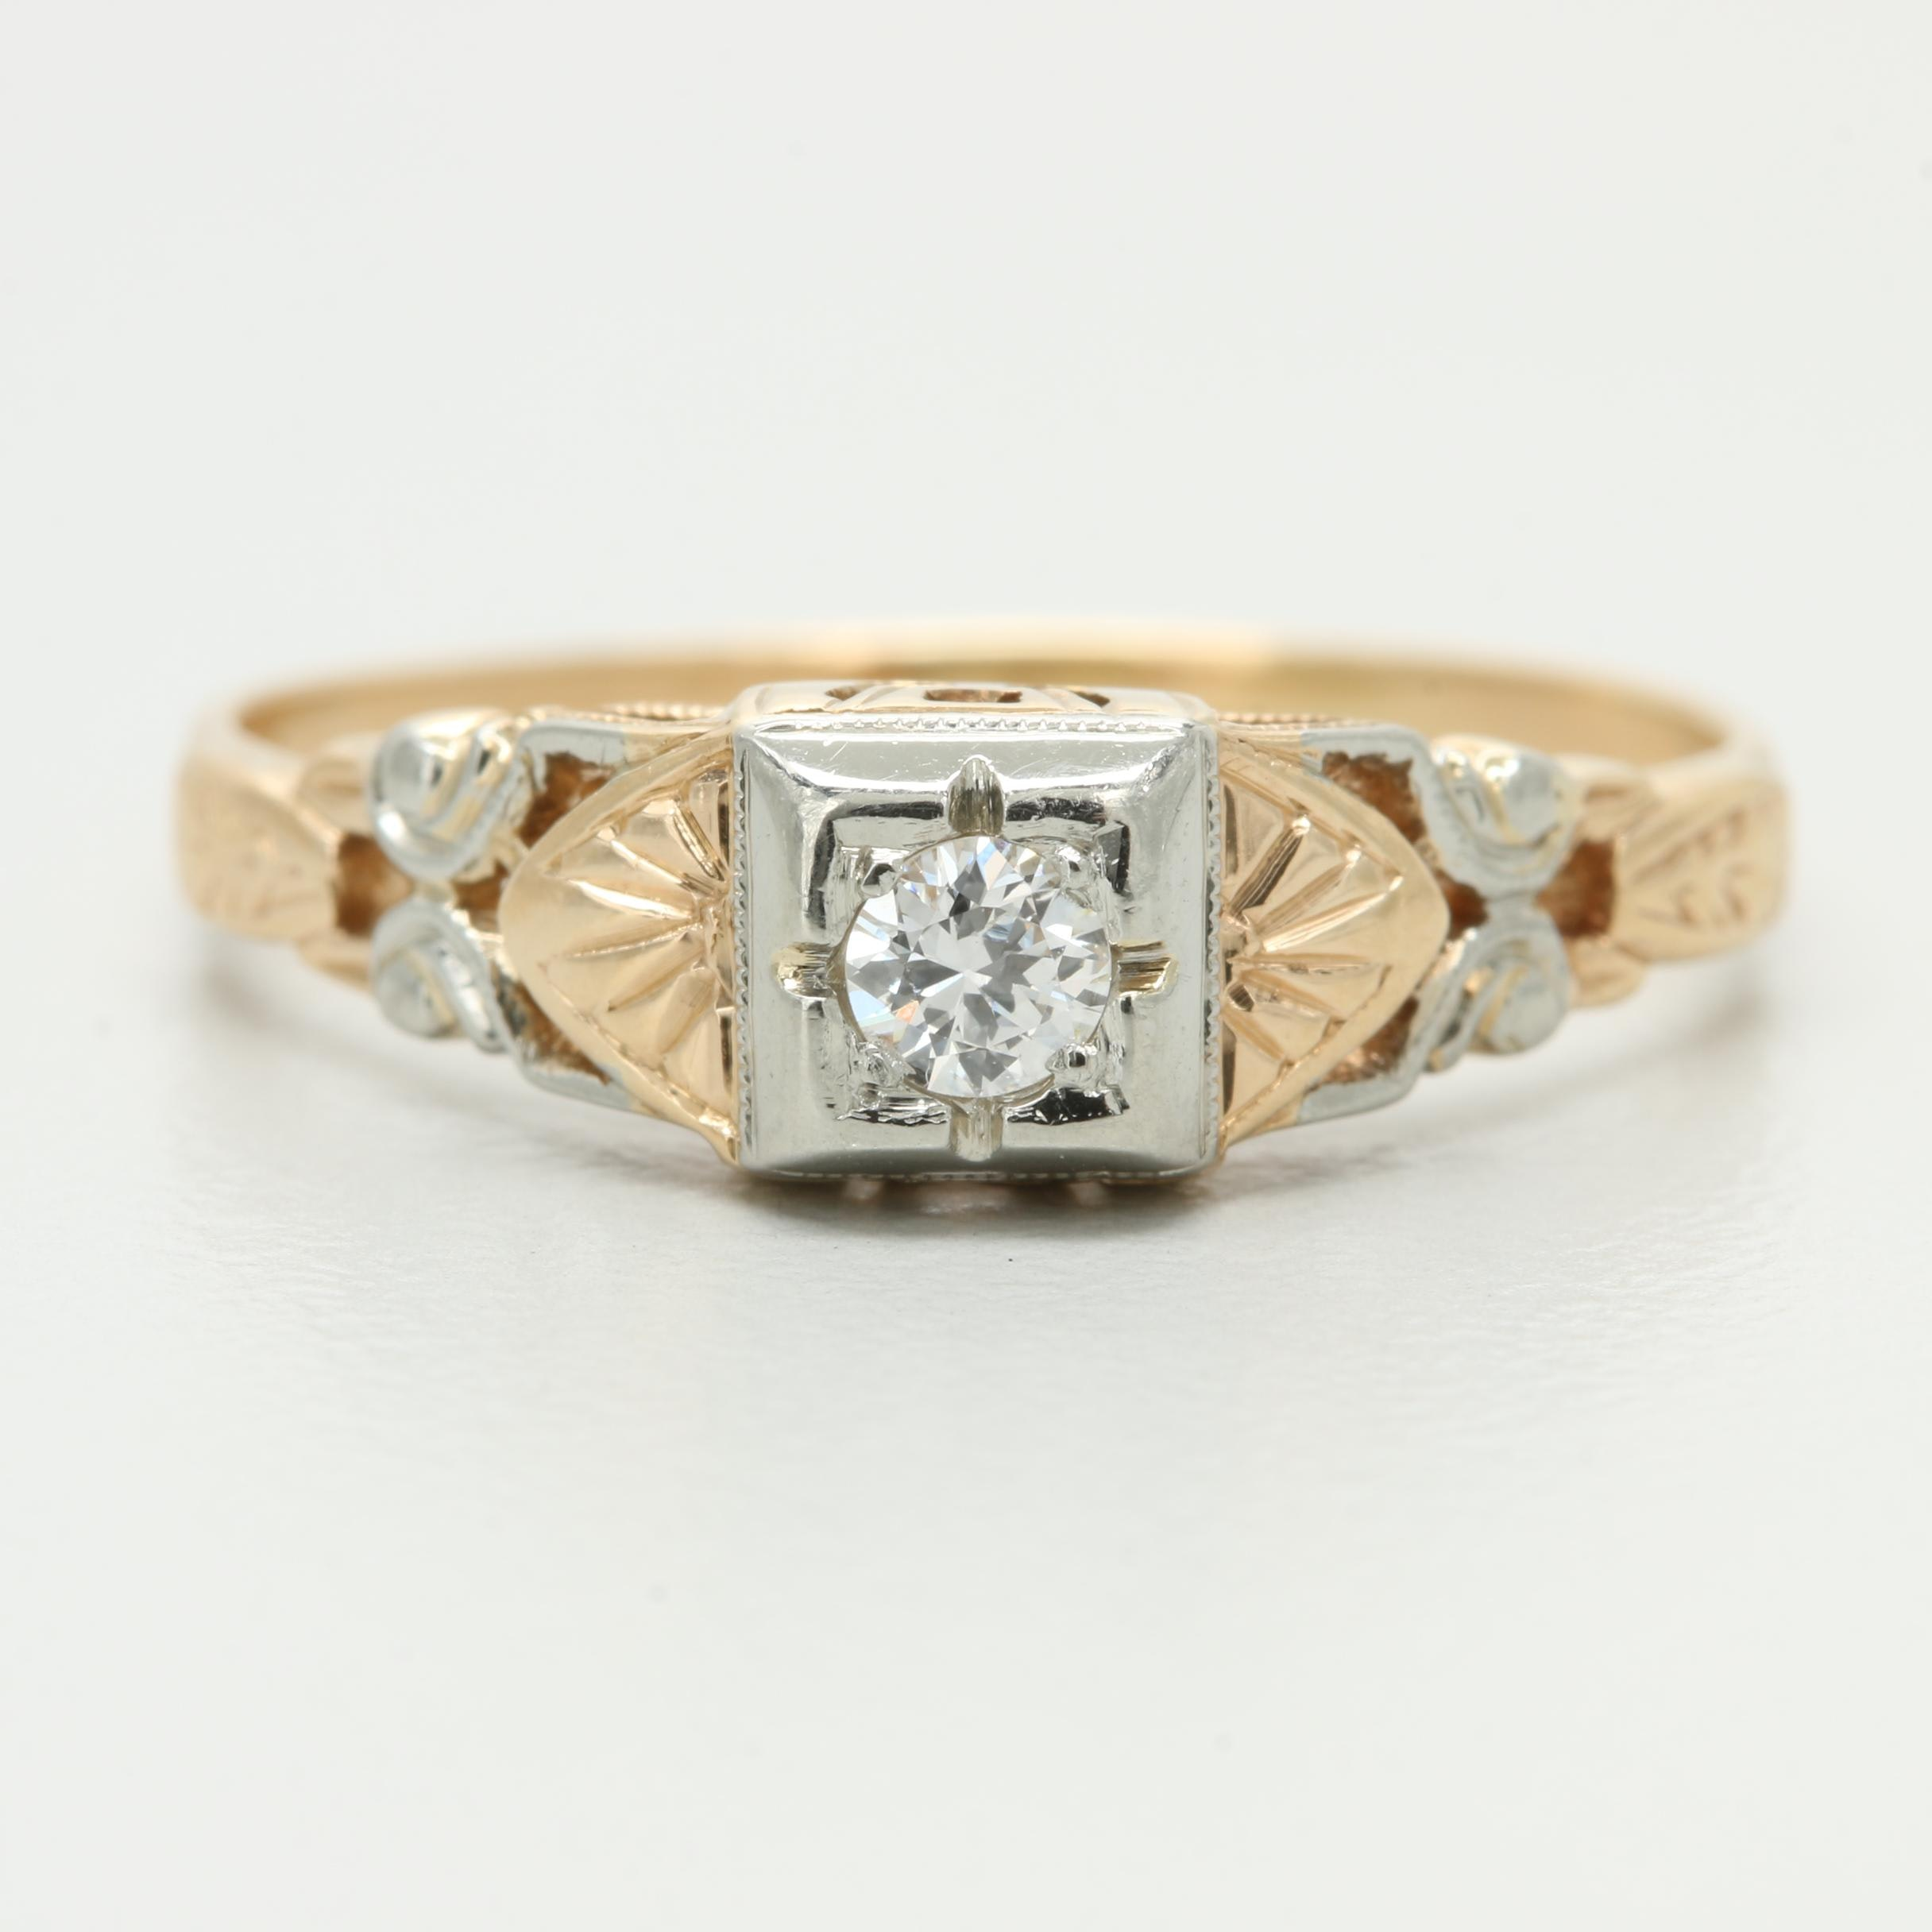 Art Deco 14K Yellow Gold Diamond Ring with White Gold Accents